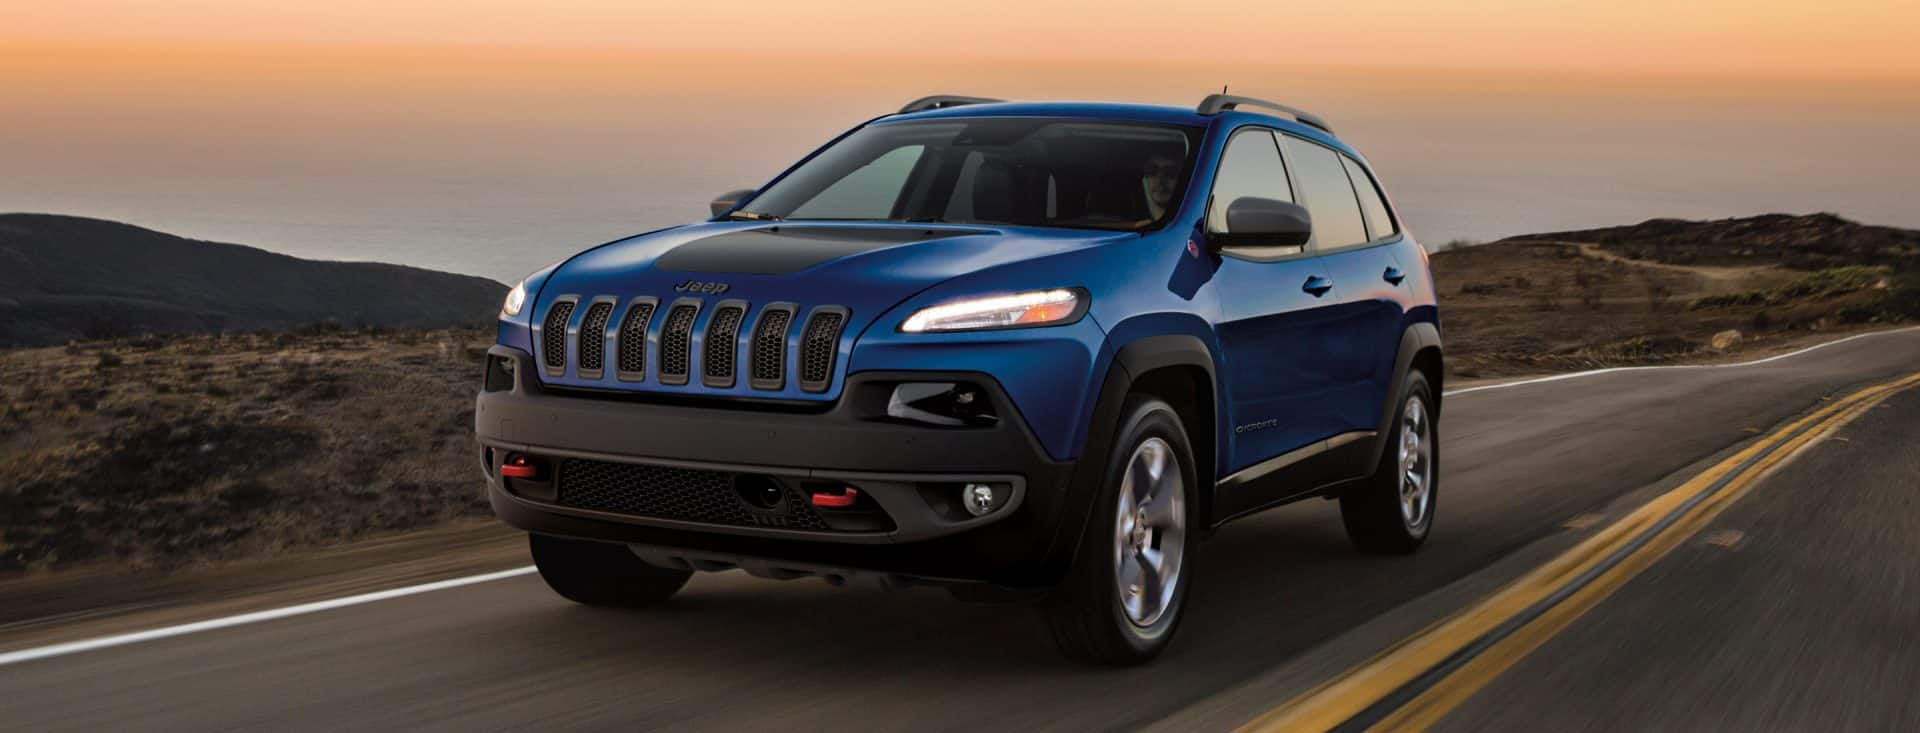 2018 Jeep Cherokee Safety and Security Hero